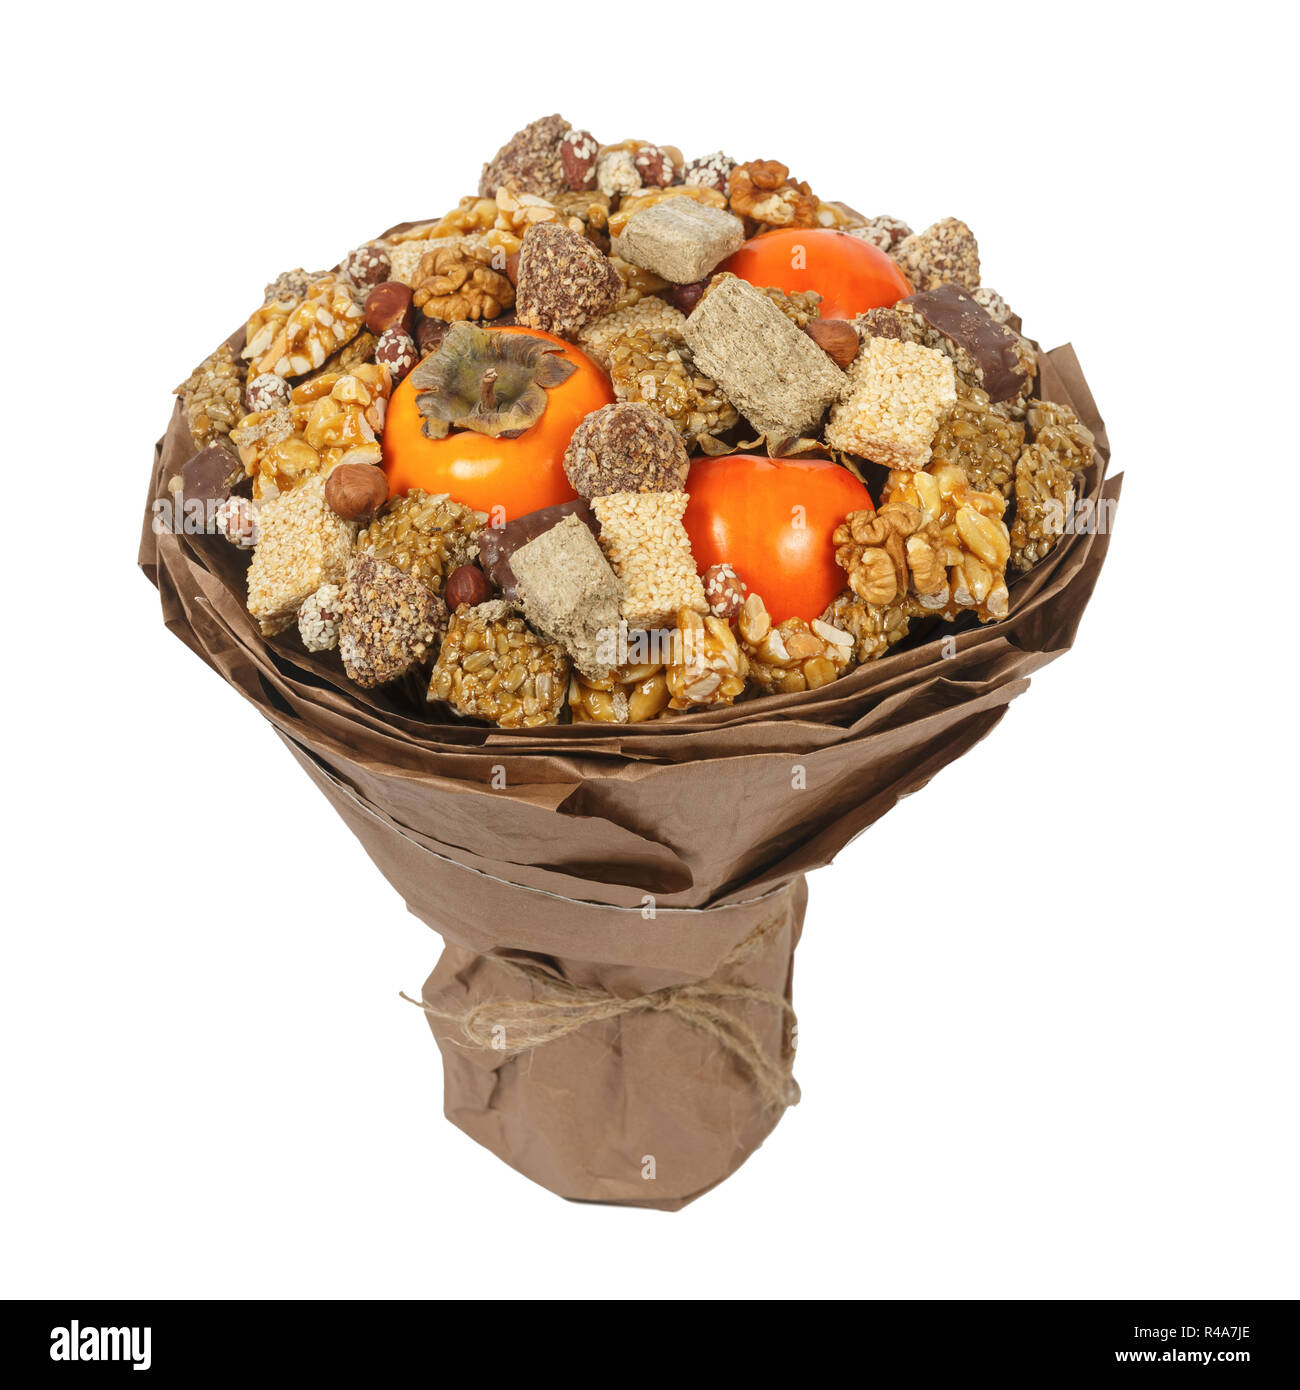 Halva, sesame snaps, nuts, chocolates and persimmons, decorated in the form of a gift bouquet on a white background - Stock Image